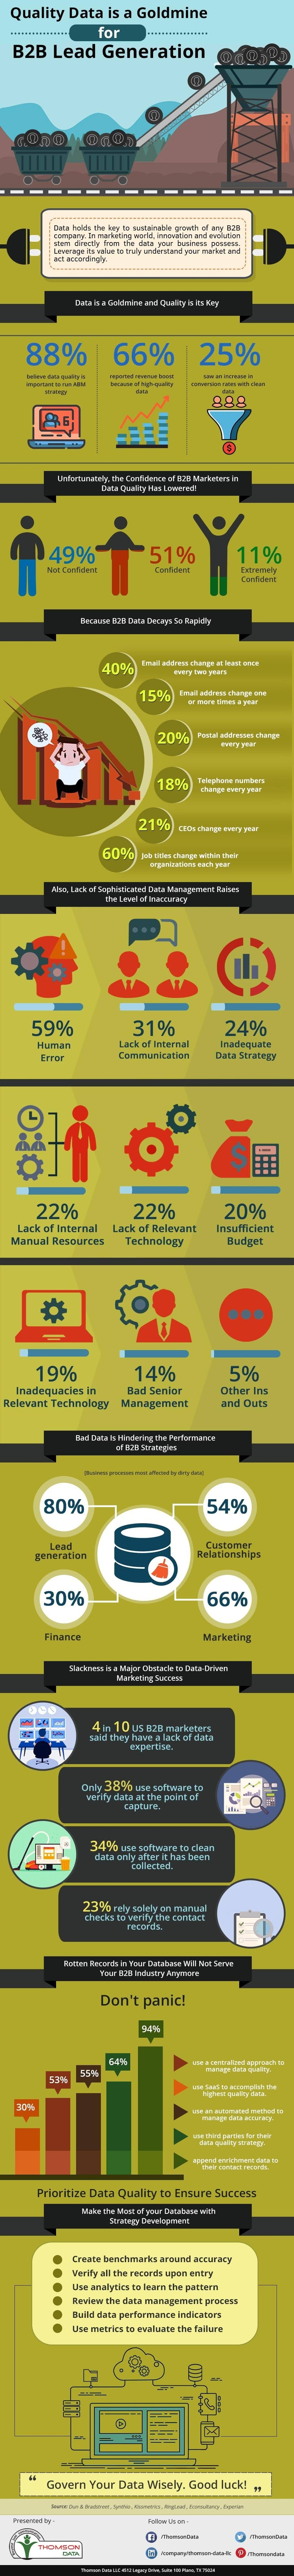 Quality Data is a Goldmine for B2B Lead Generation #infographic